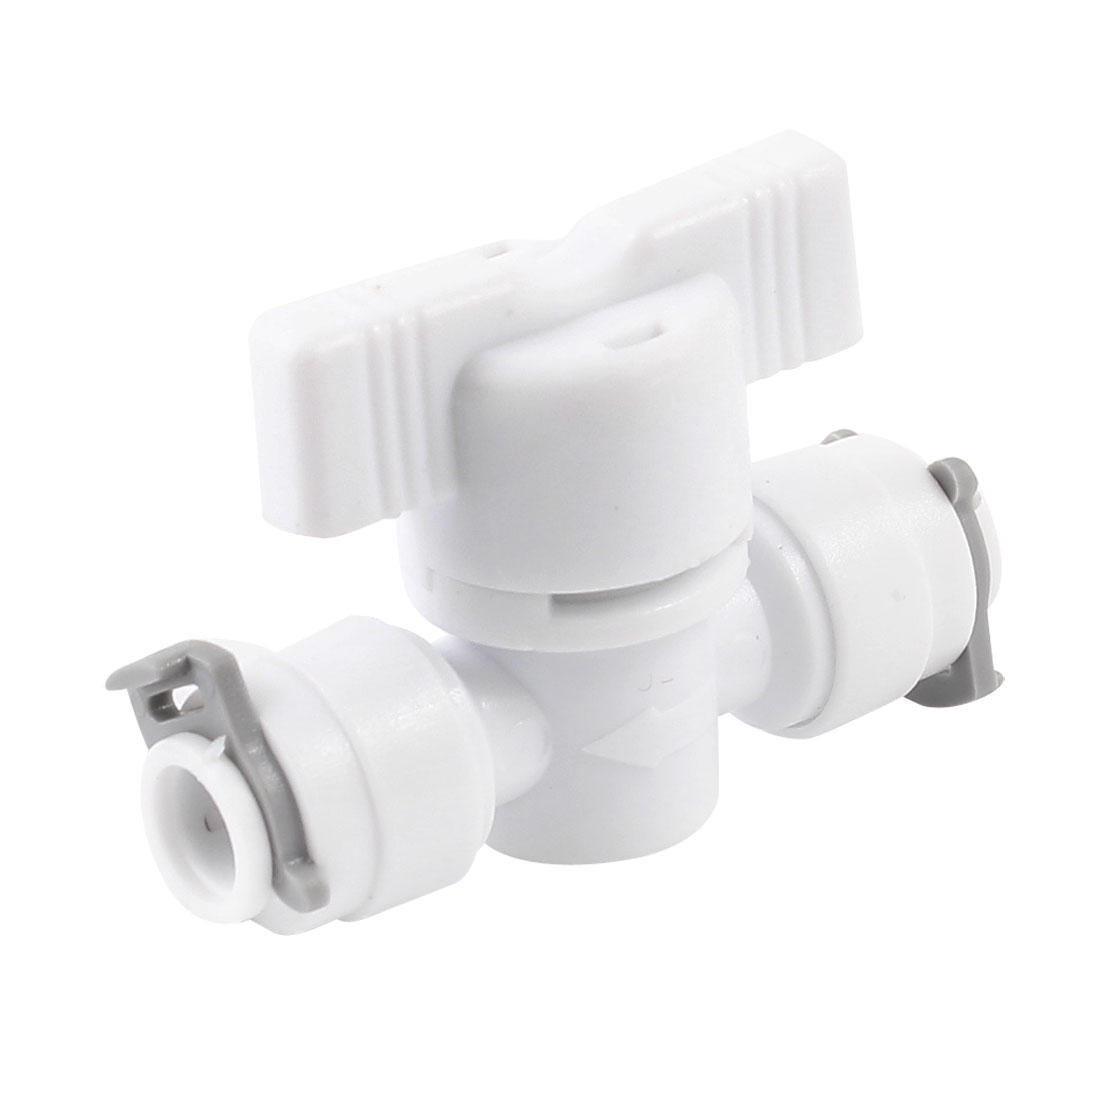 1/4 Turn Lever White Plastic 7mm Hose Tee Handle Ball Valve